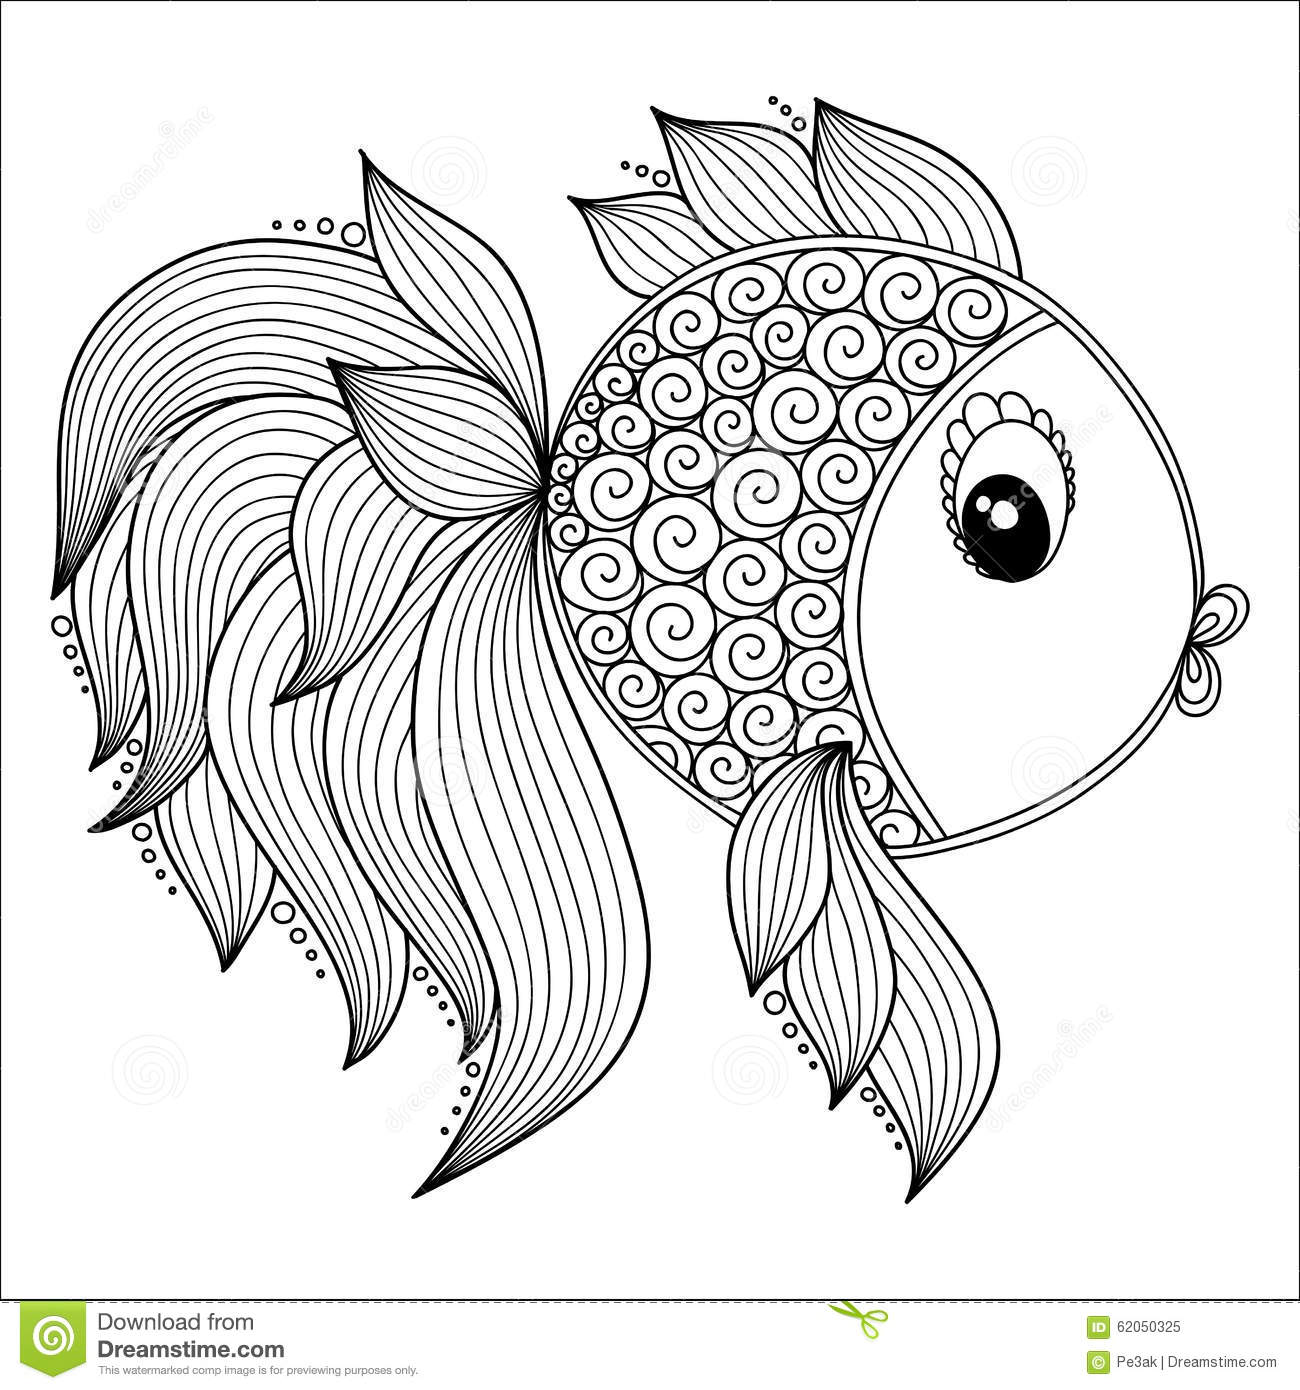 mod le pour livre de coloriage poissons mignons de dessin anim illustration de vecteur image. Black Bedroom Furniture Sets. Home Design Ideas